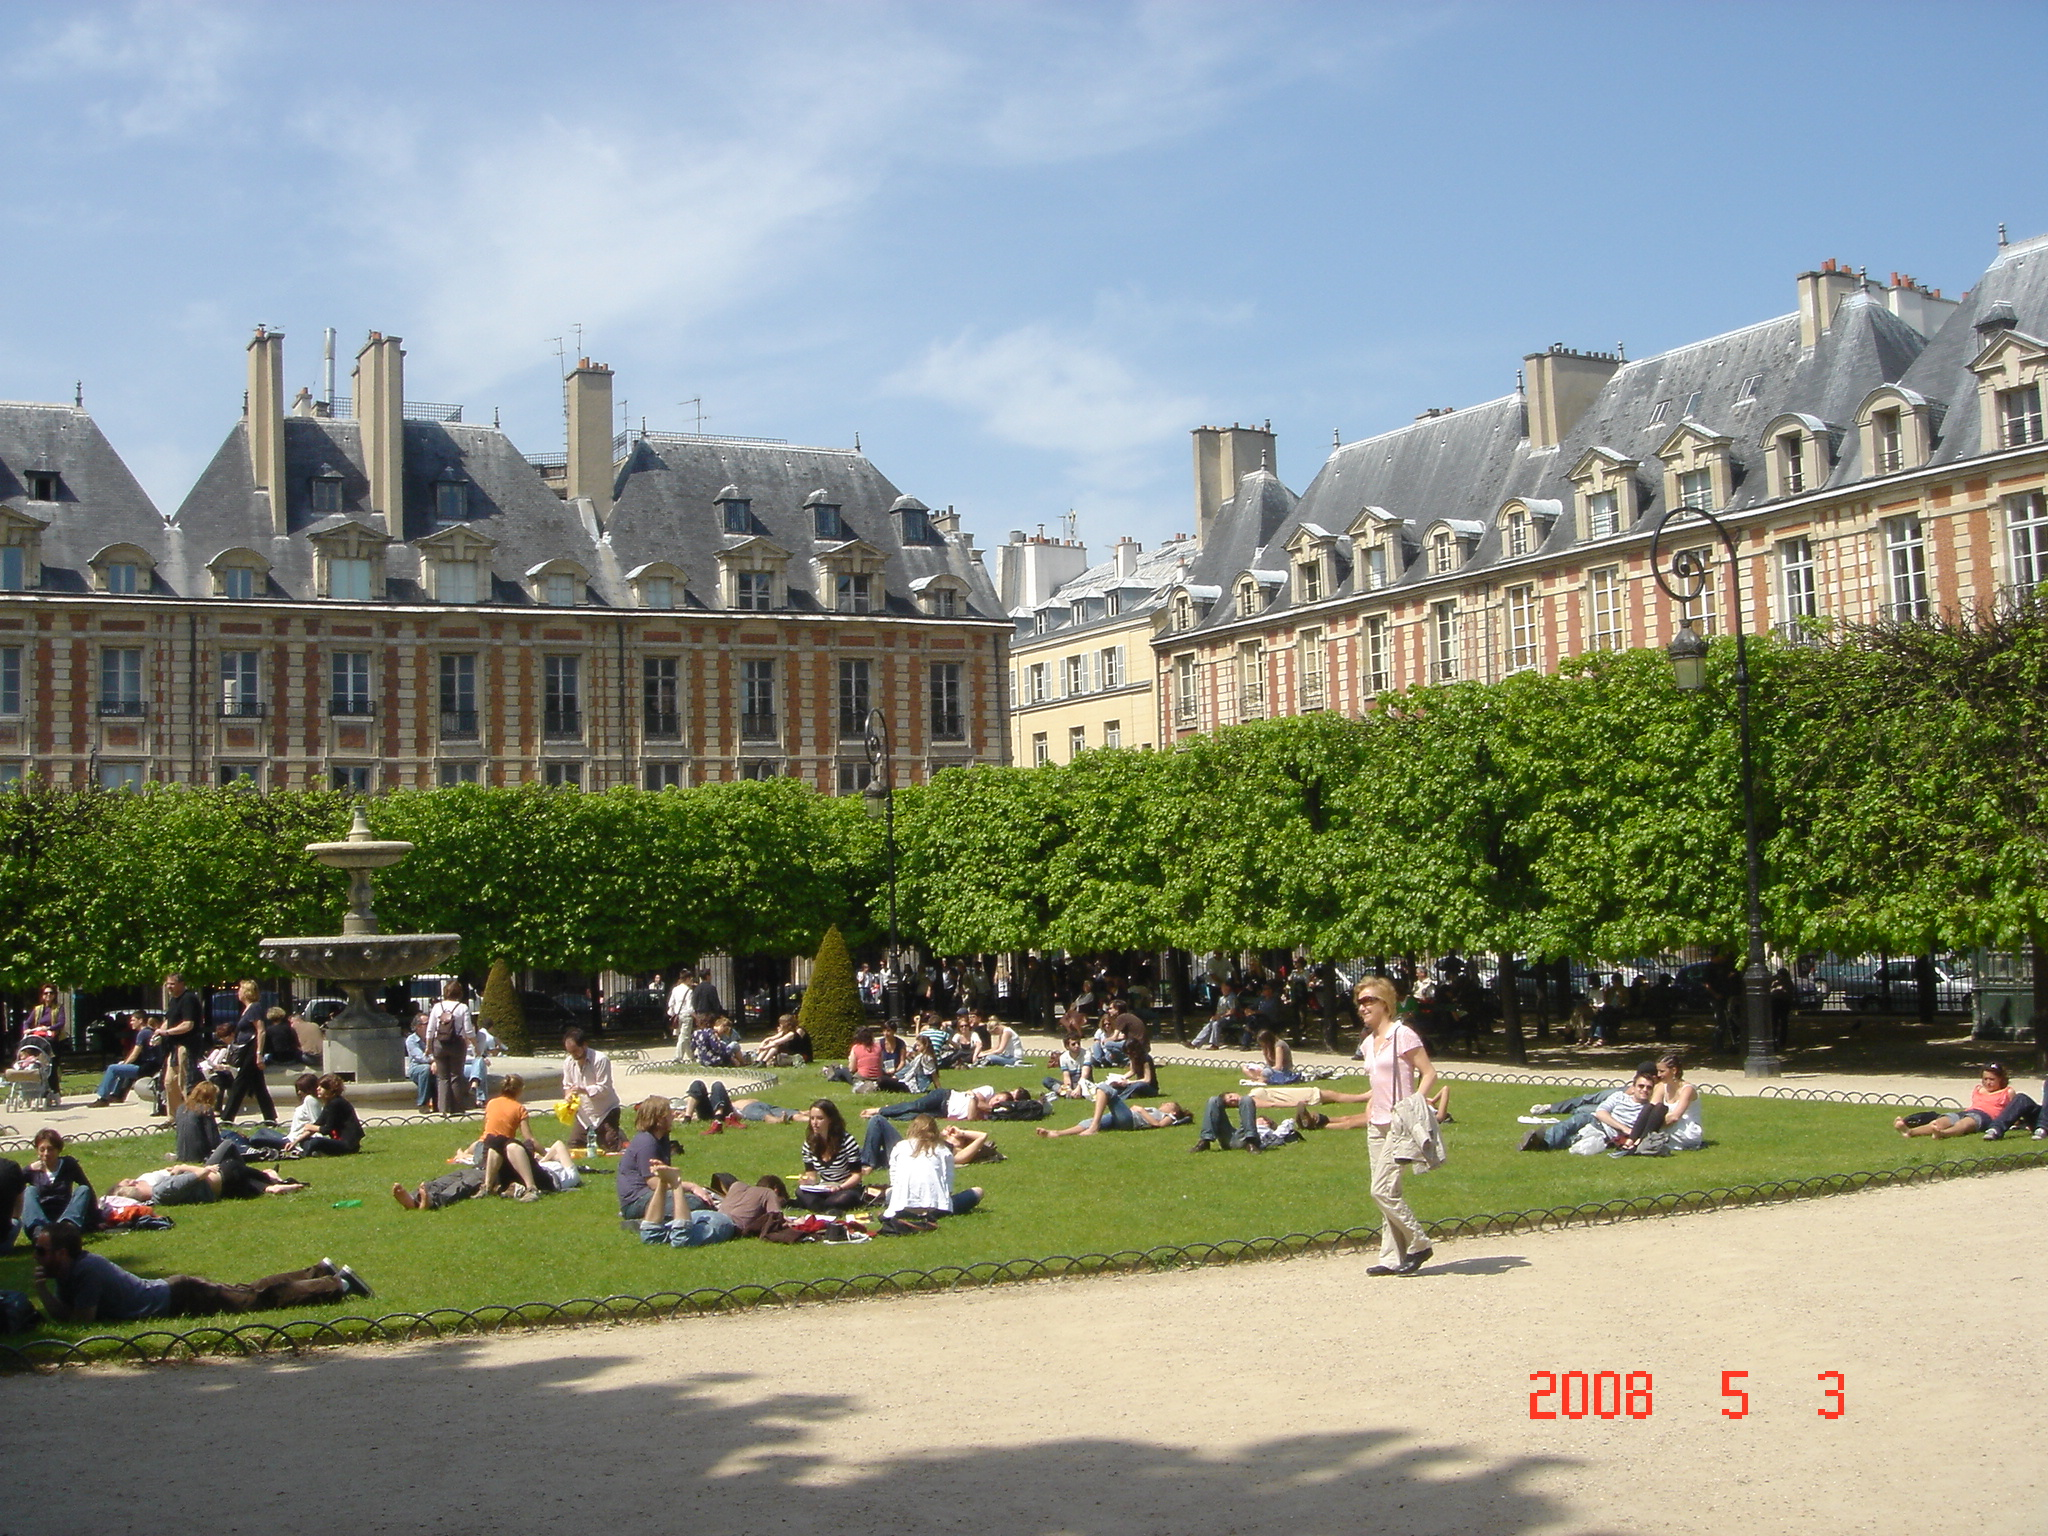 Place de Vosges - Gamesforlanguage.com